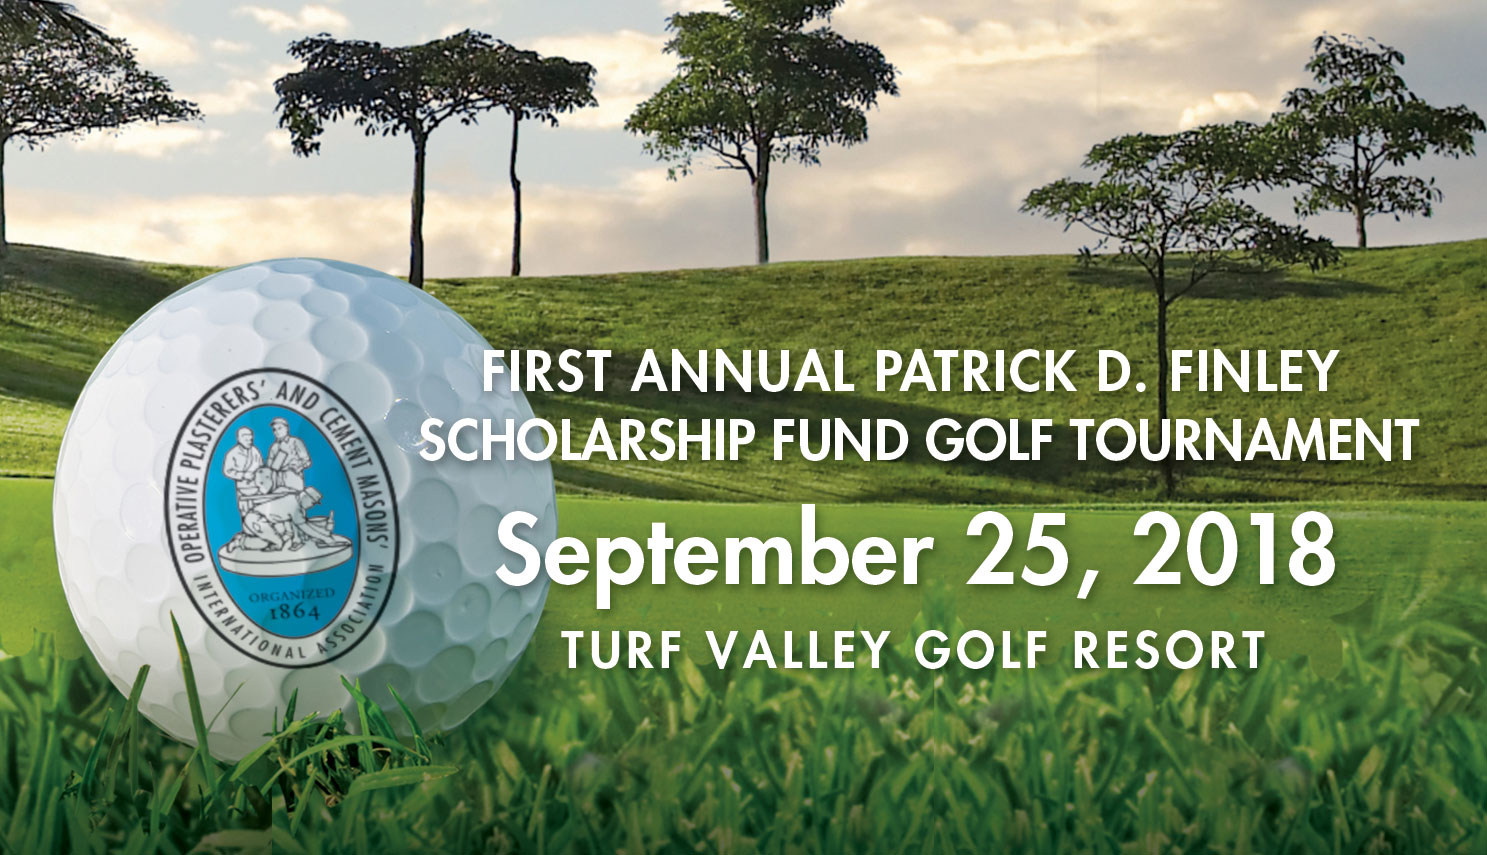 First Annual Patrick D. Finley Scholarship Fund Golf Tournament, September 25, 2018, Turf Valley Resort